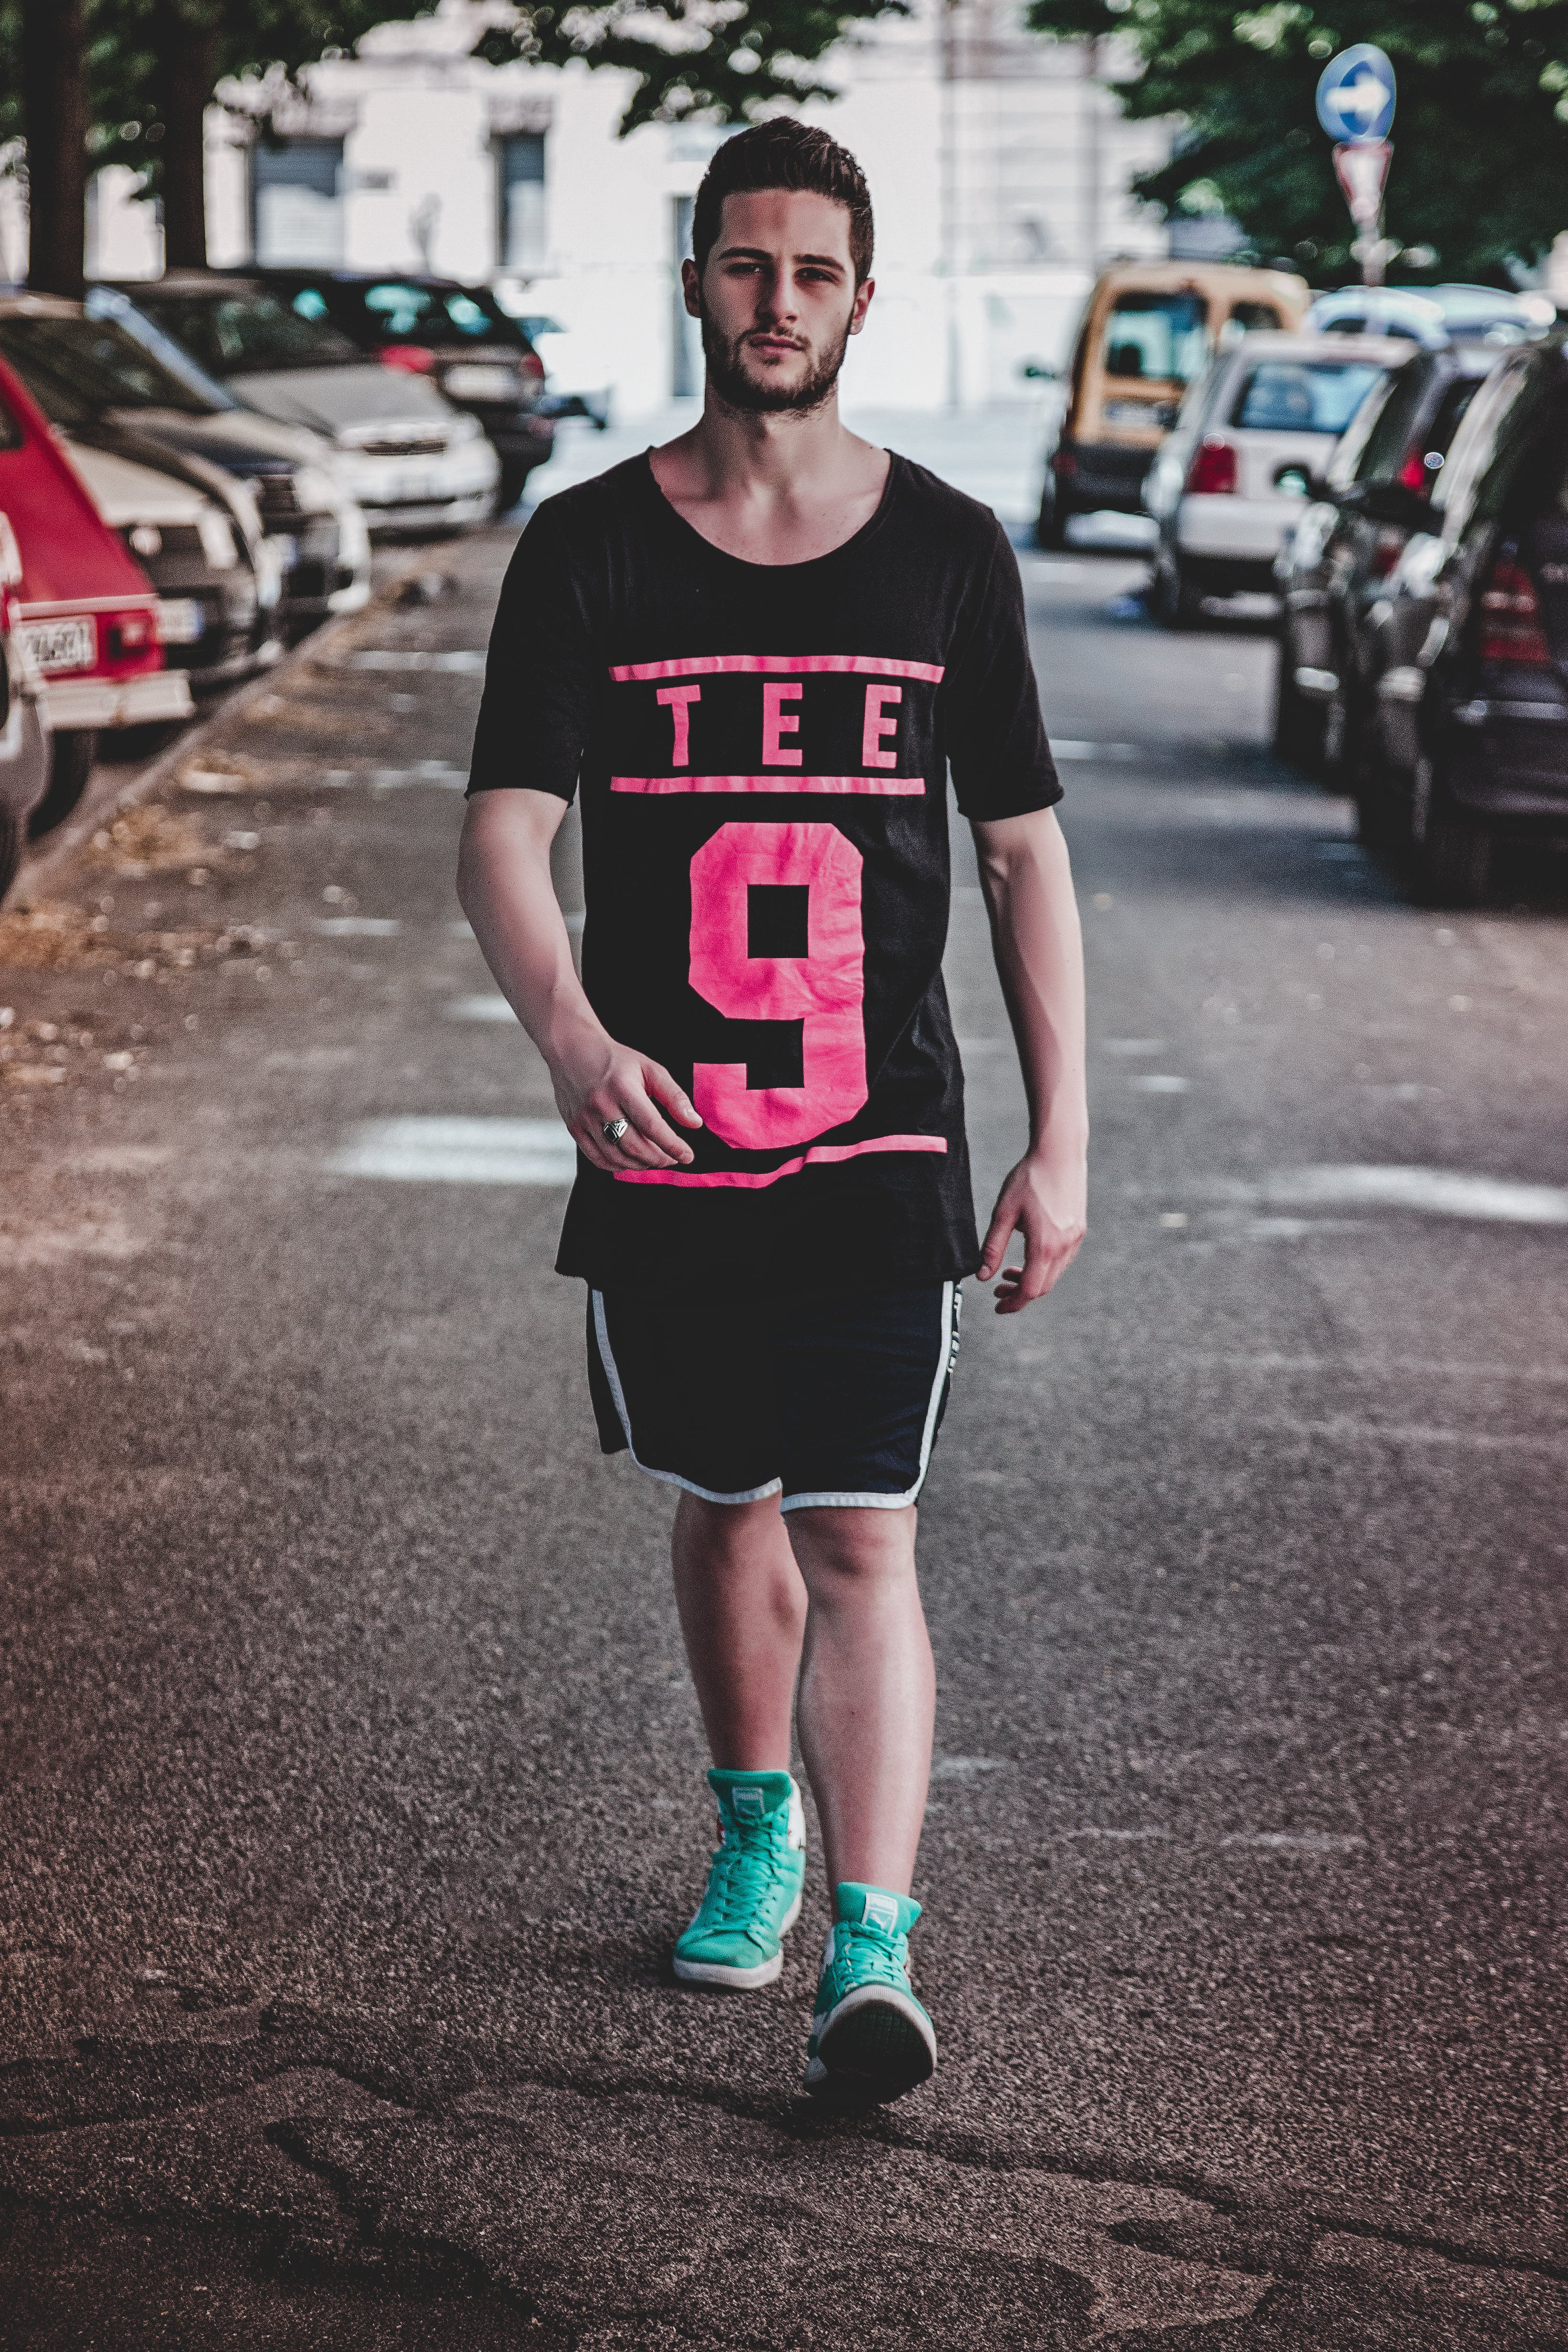 Man Wearing Black Crew-neck T-shirt, Black Shorts, and Pair of Teal High-top Sneakers Walking Between Vehicles